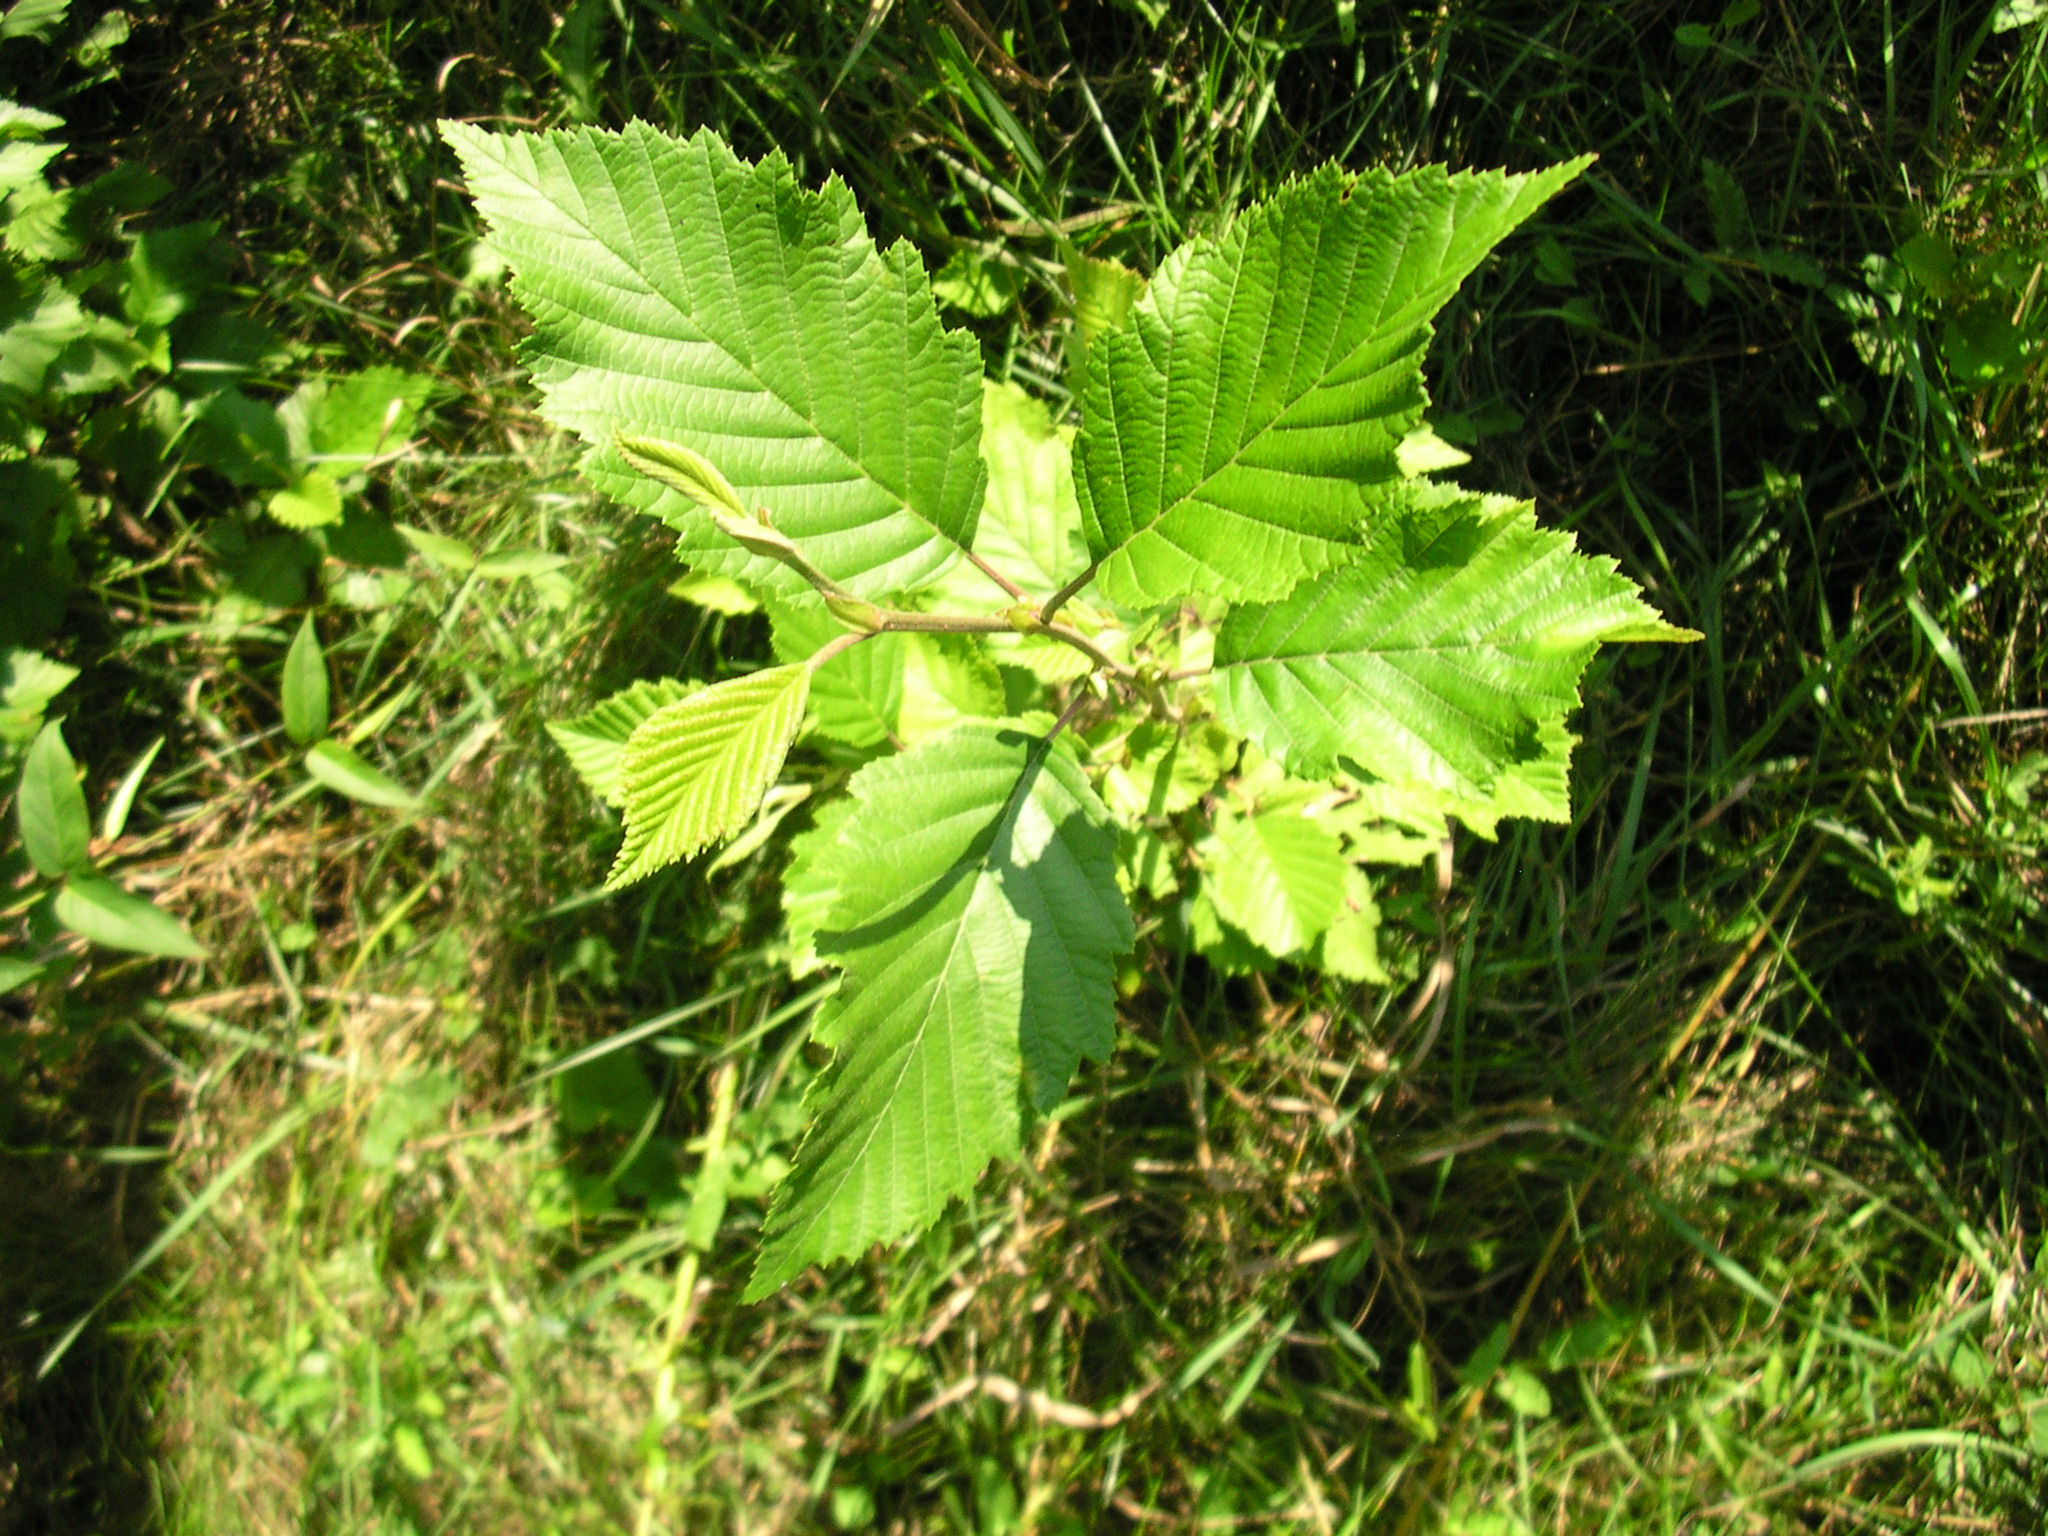 Silver maples species name saccharinum means sugary in reference to the sap though silver maple sap is not as sweet as that of sugar maple Acer saccharum The genus name Acer means sharp referring to the sharp tips of the leaf lobes of most maples